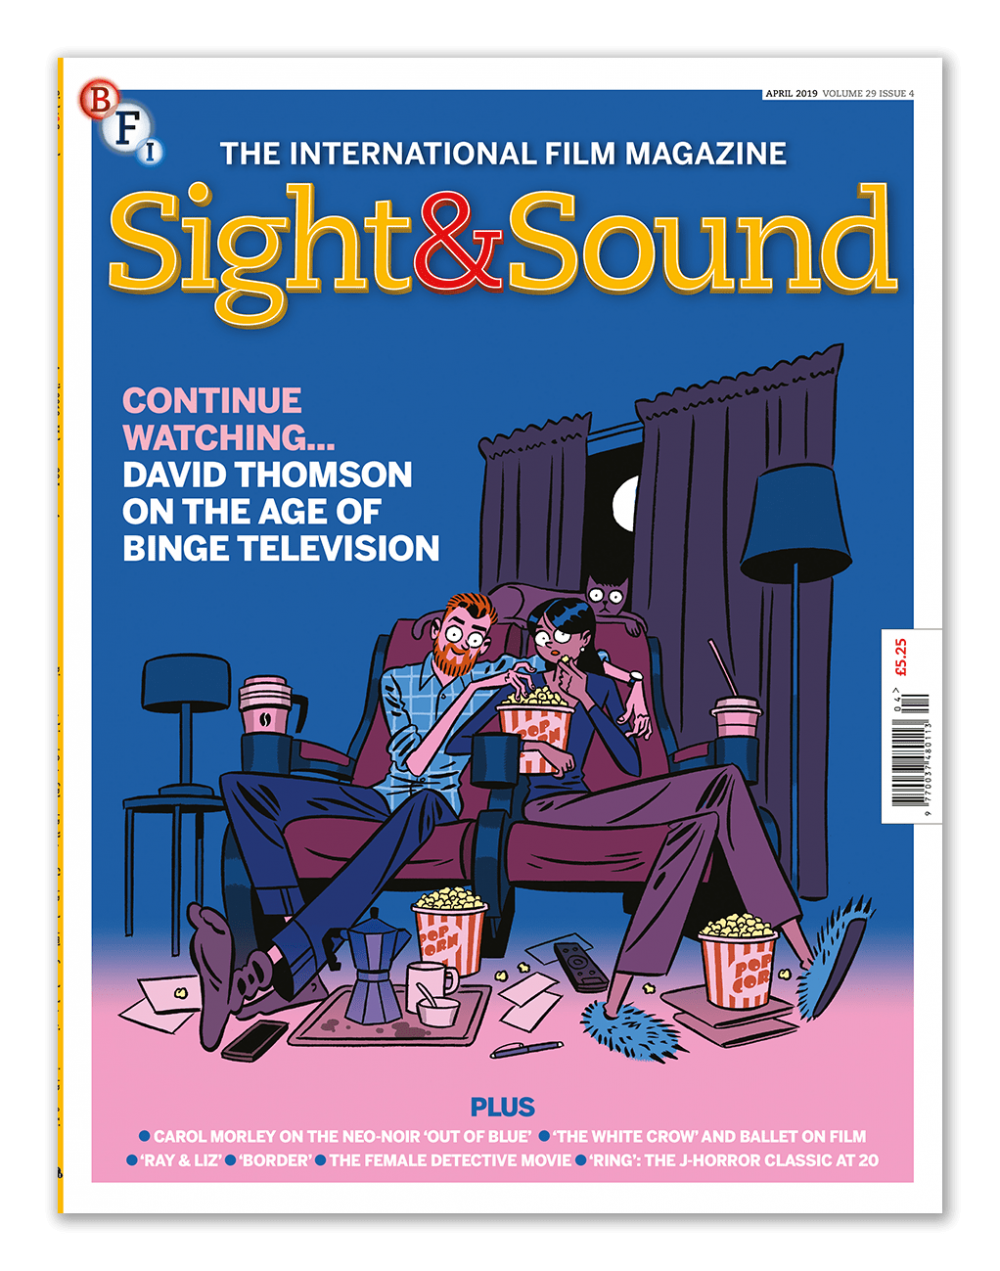 Sight & Sound: the April 2019 issue | BFI